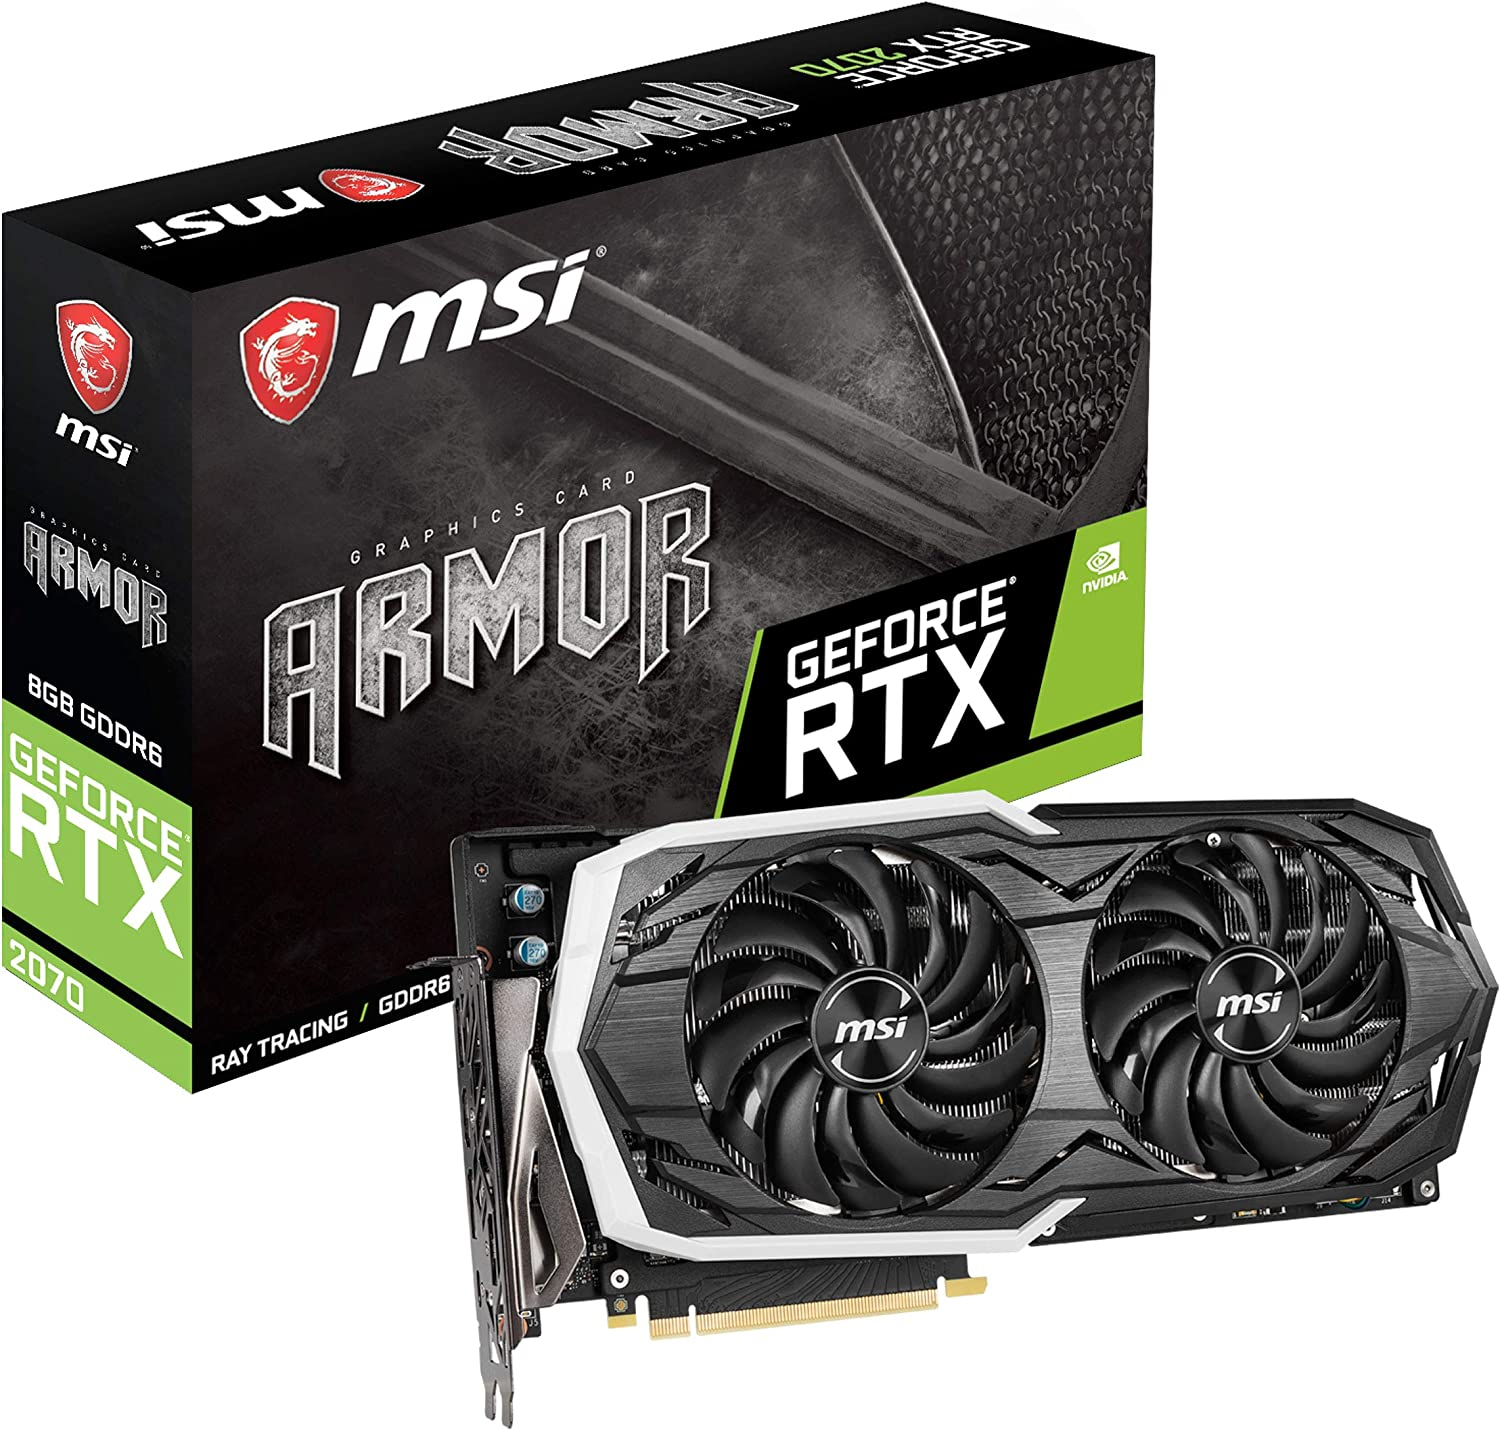 MSI GAMING GeForce RTX 2070 8GB GDRR6 256-bit HDMI/DP/USB Ray Tracing Turing Architecture HDCP Graphics Card (RTX 2070 ARMOR 8G)